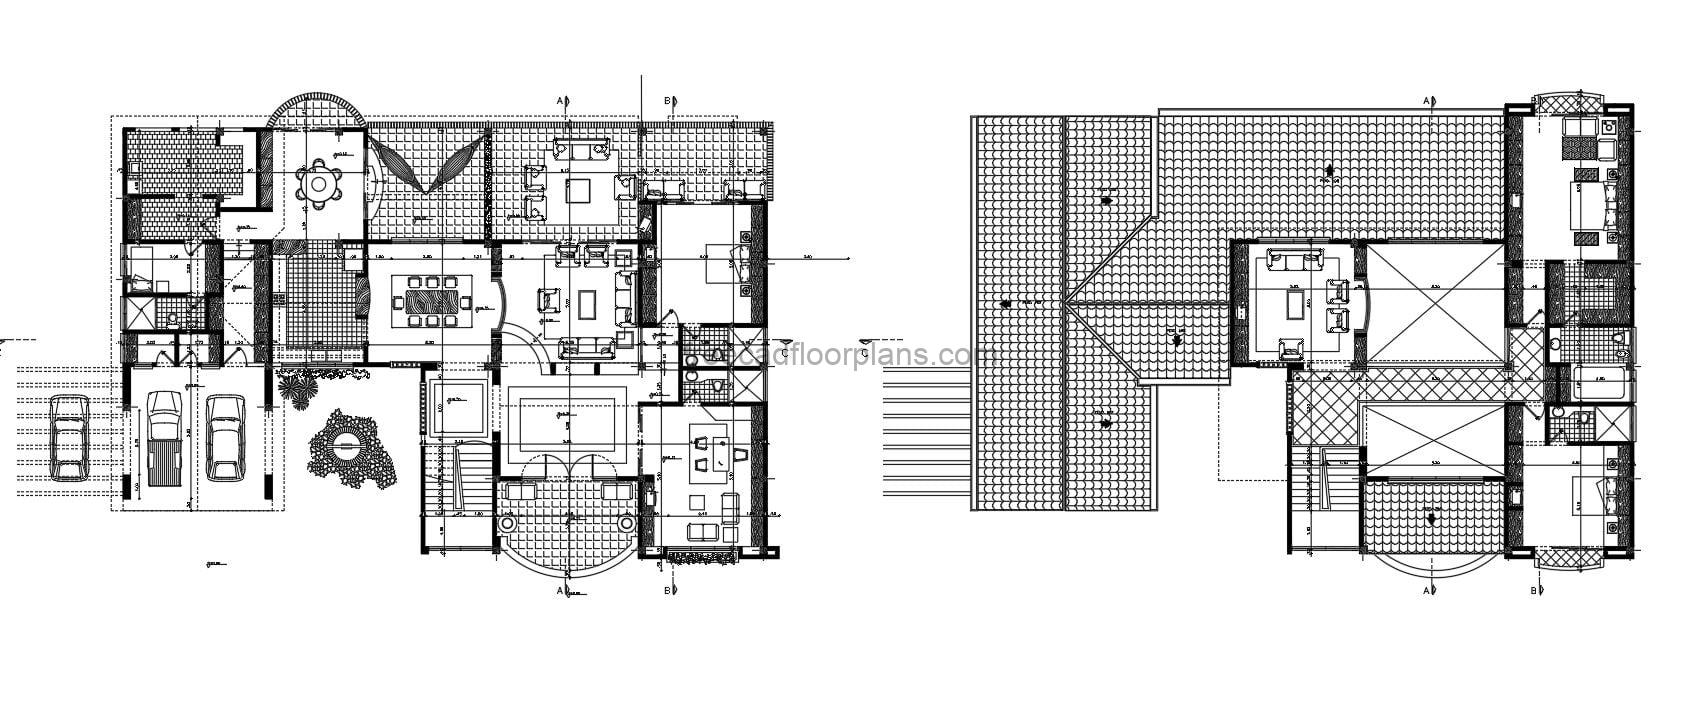 Two Level Villa With Terraces in full Autocad dwg format floor plans, floor plans with dimensions and interior Autocad blocks, villa with four bedrooms and terraces on several levels. free downloadable floor plan 2d dwg format